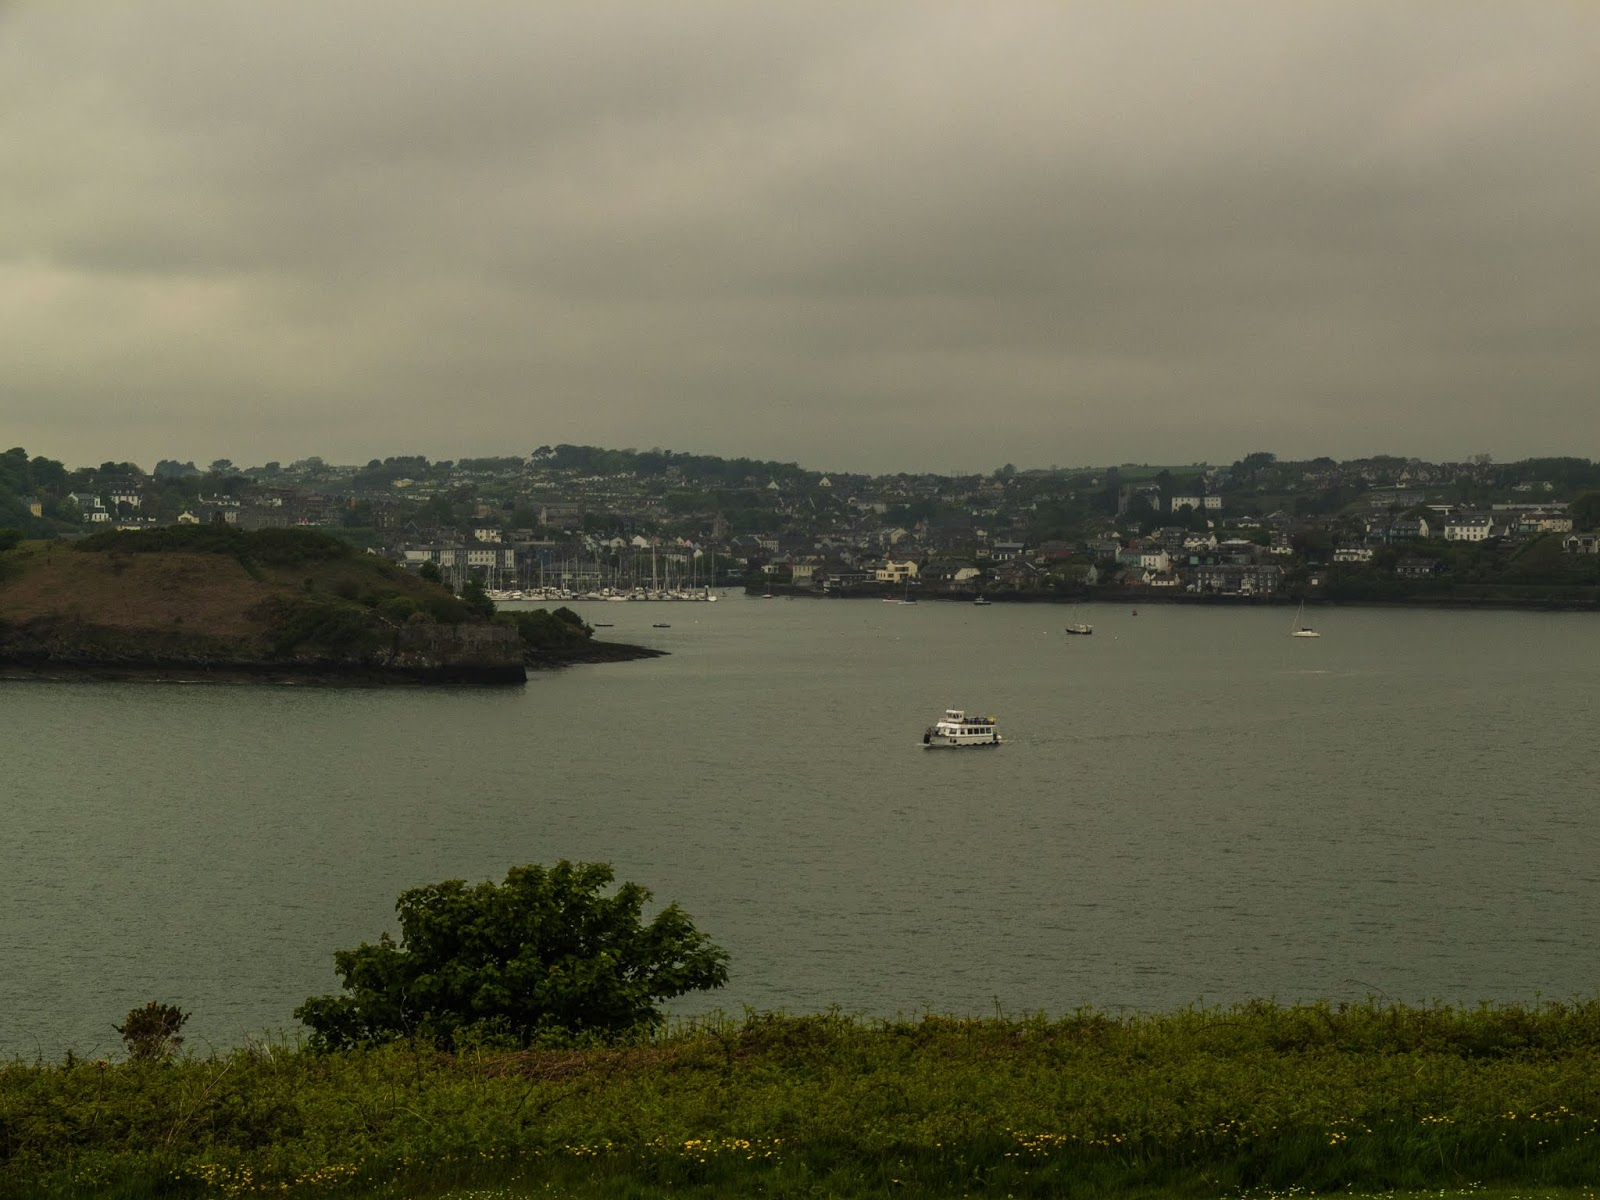 View of the Kinsale Bay from Charles Fort on a grey and gloomy afternoon.